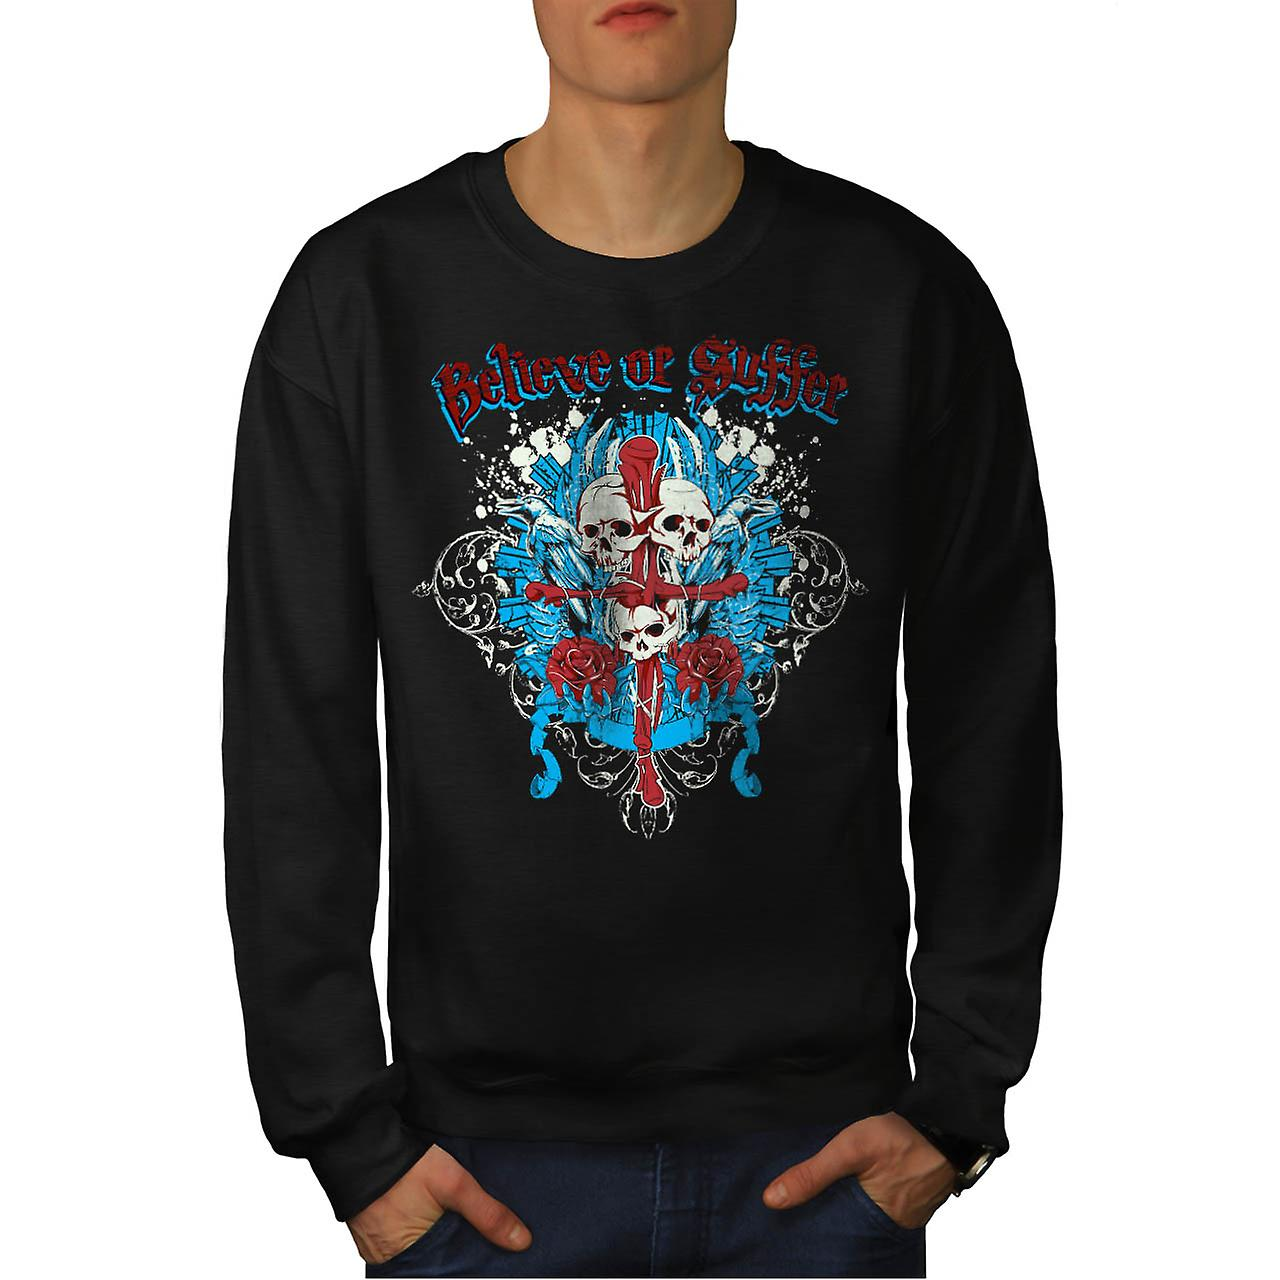 Believe Suffer Skull Cross Bones Men Black Sweatshirt | Wellcoda